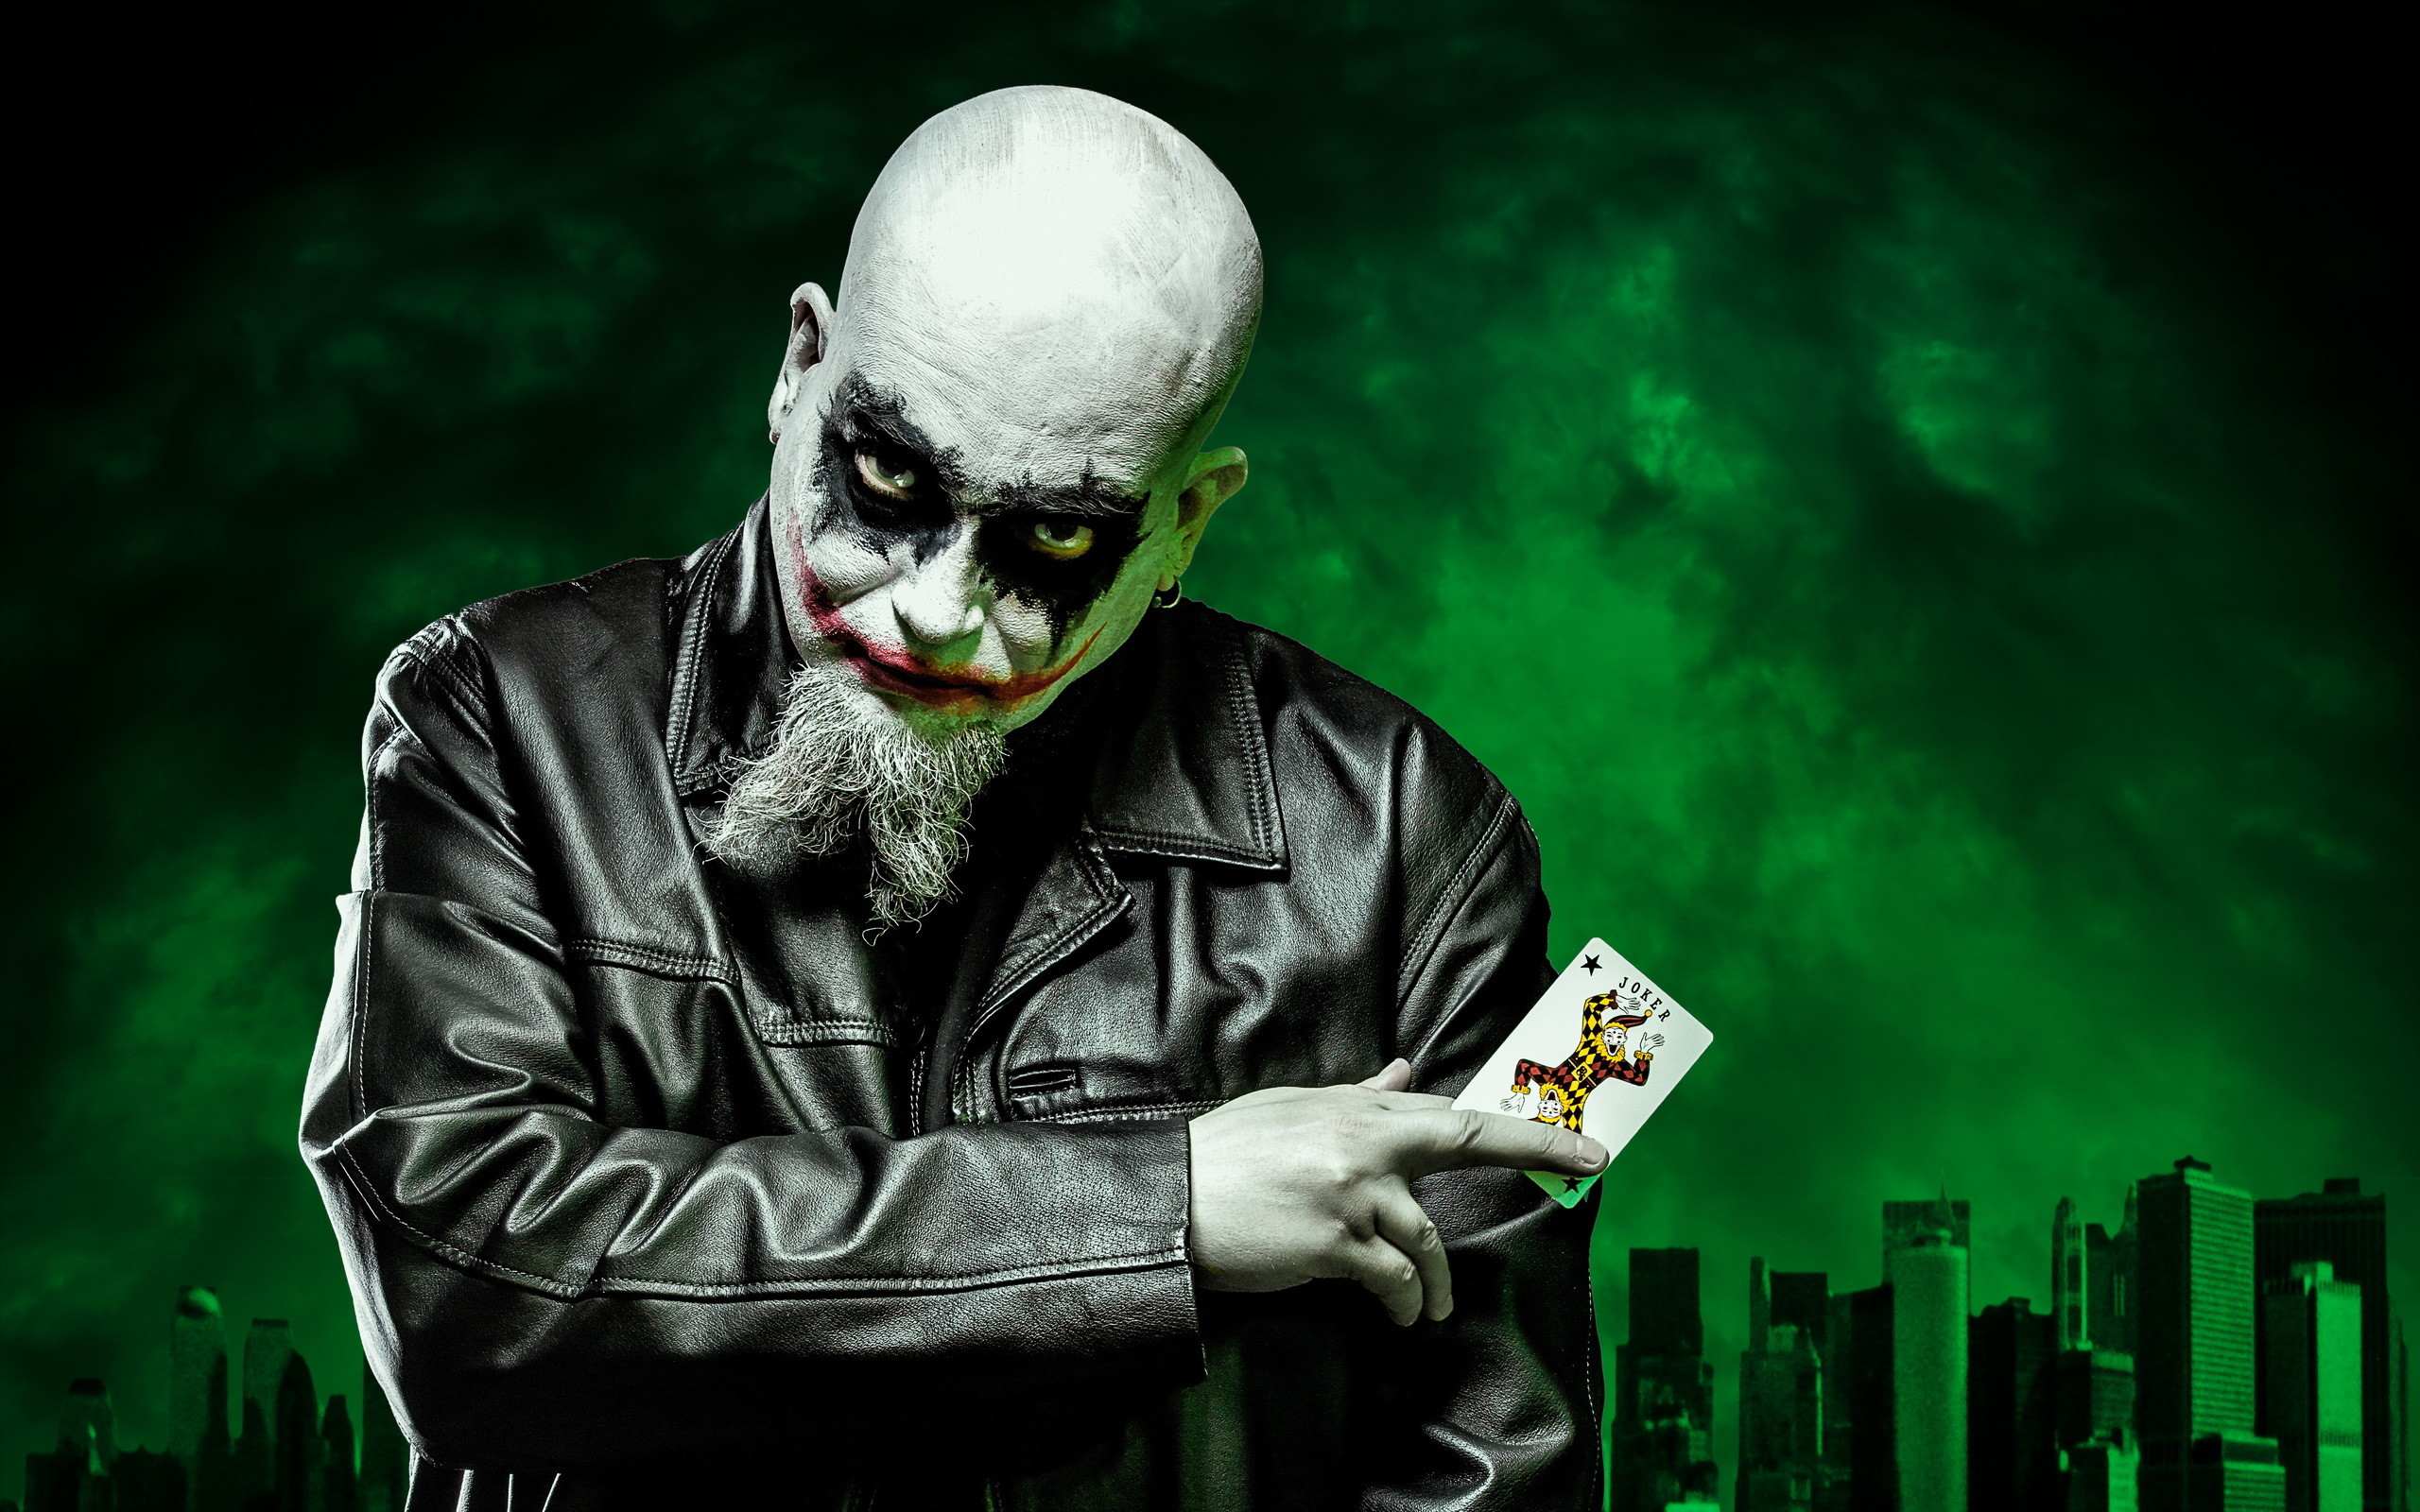 Res: 2560x1600, Joker dark self portrait batman clown evil wallpaper |  | 182221 |  WallpaperUP